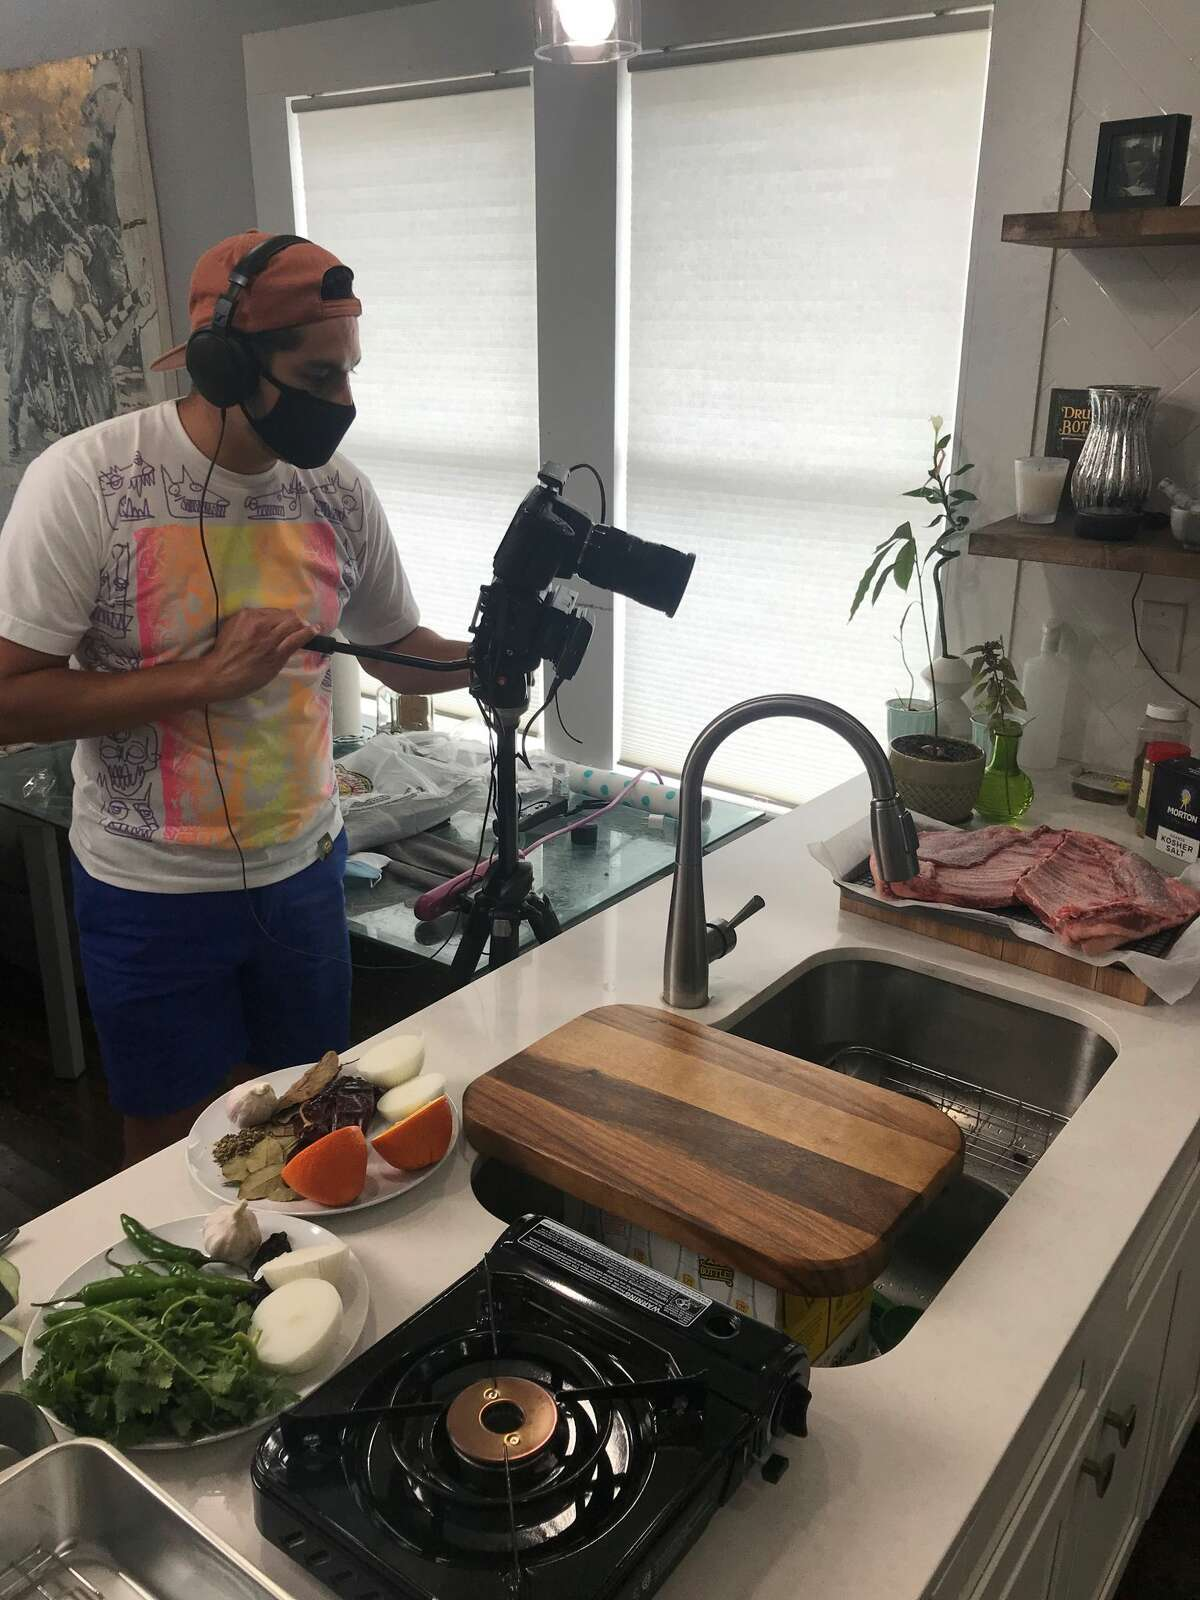 San Antonio resident Diego Ponce is shown filming an episode of a cooking show for the YouTube channel,